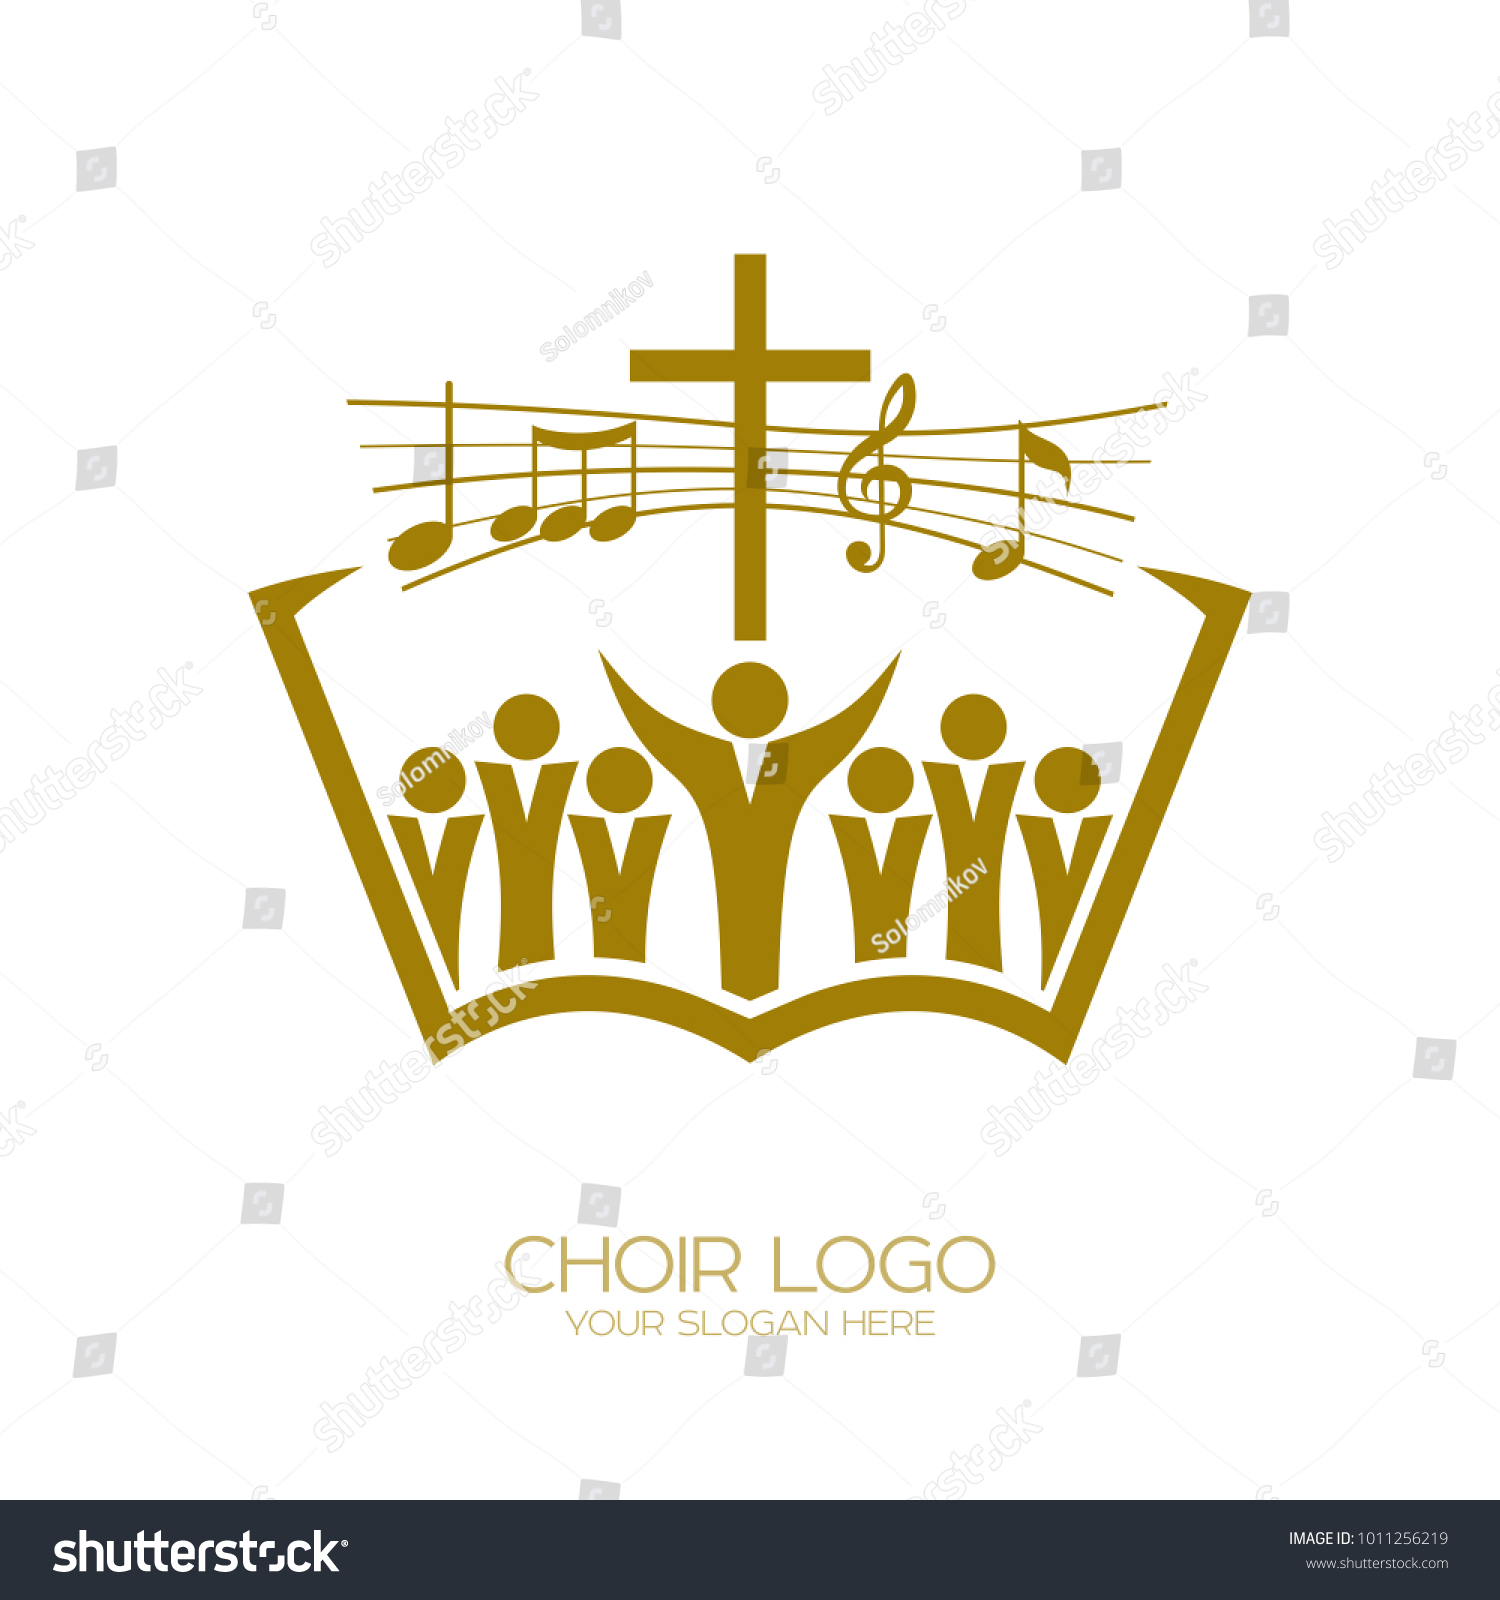 Music logo christian symbols church god stock vector 1011256219 music logo christian symbols the church of god sings to jesus christ a song buycottarizona Image collections